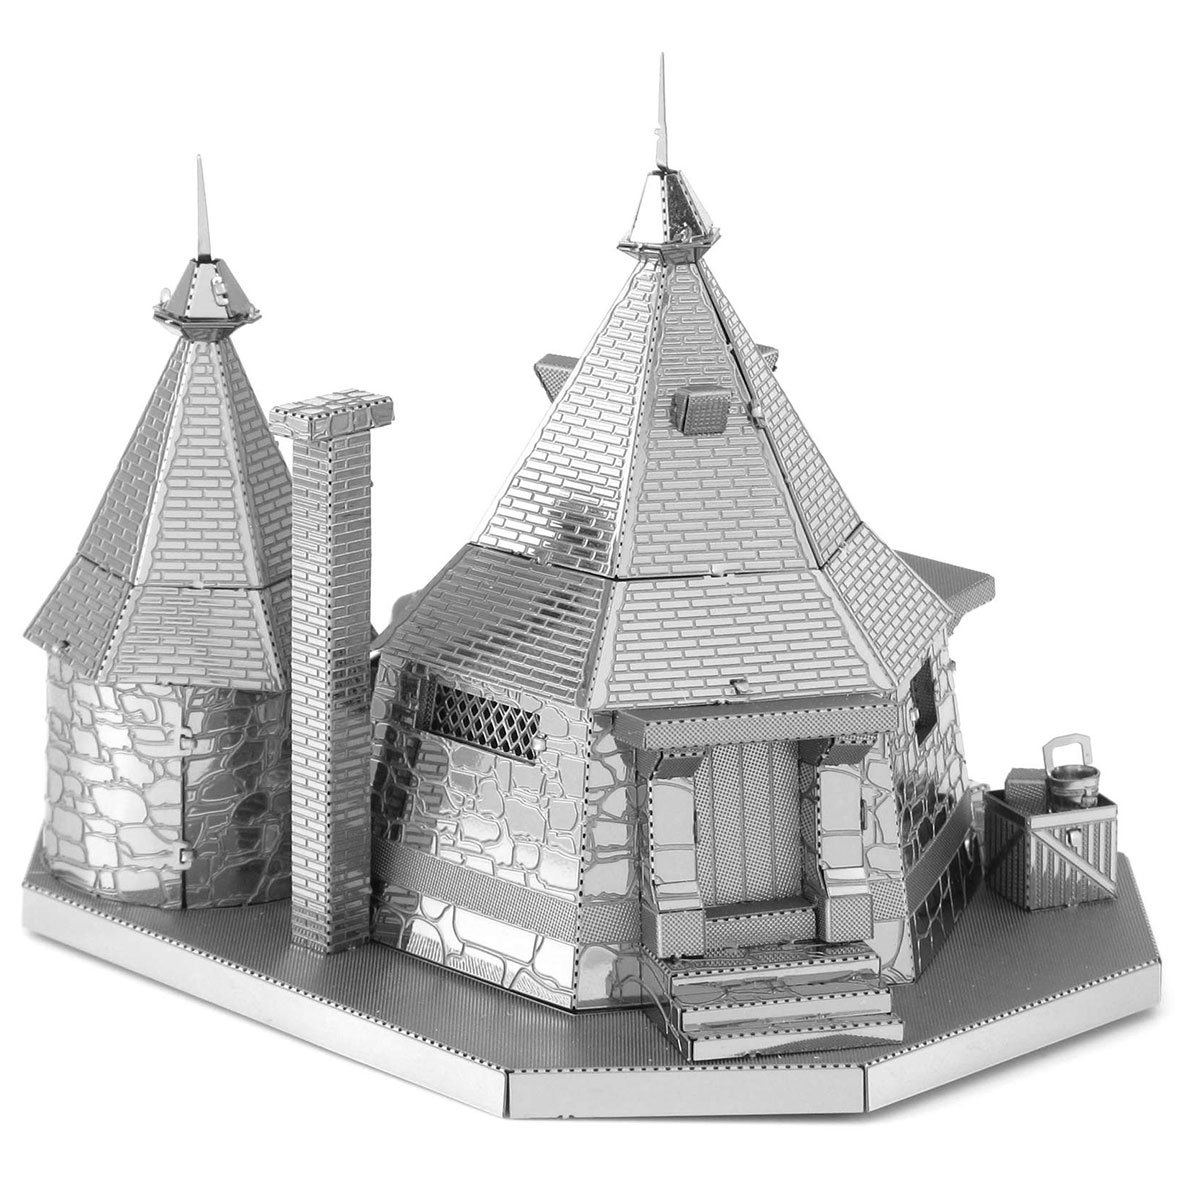 Fascinations metal earth 3d metal model diy kits What house was hagrid in